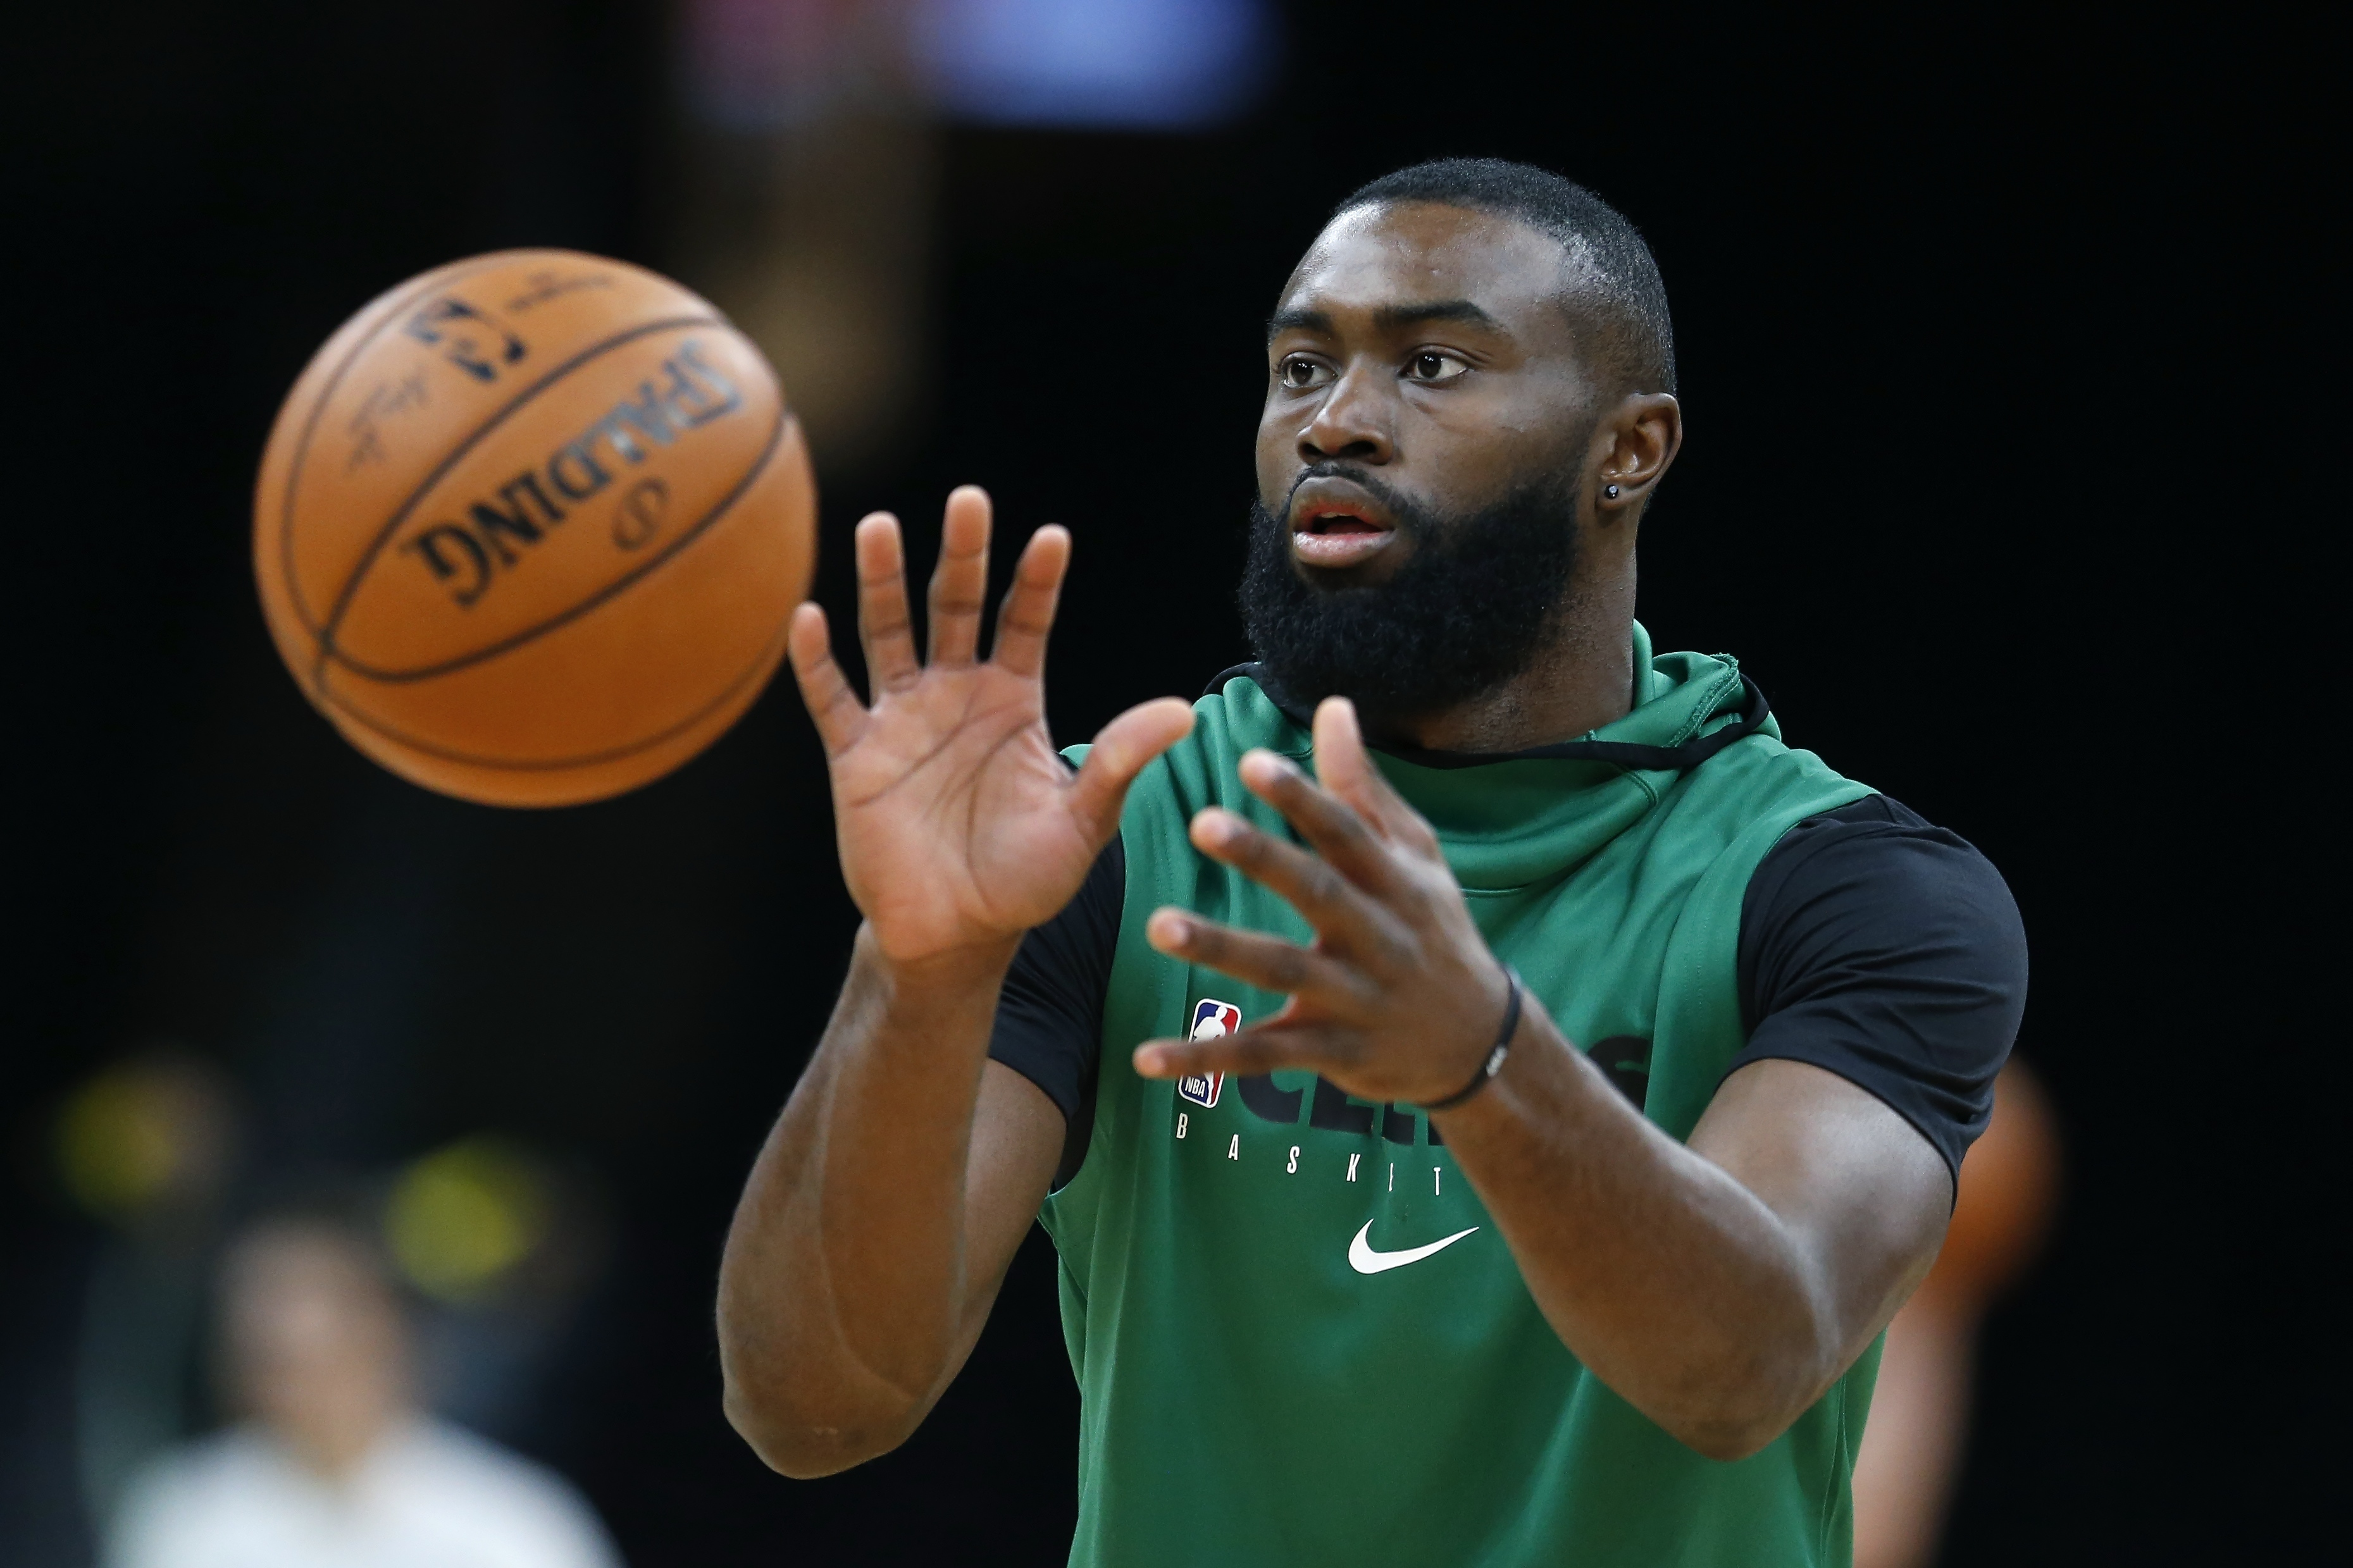 This is how the Celtics' Jaylen Brown views China controversy